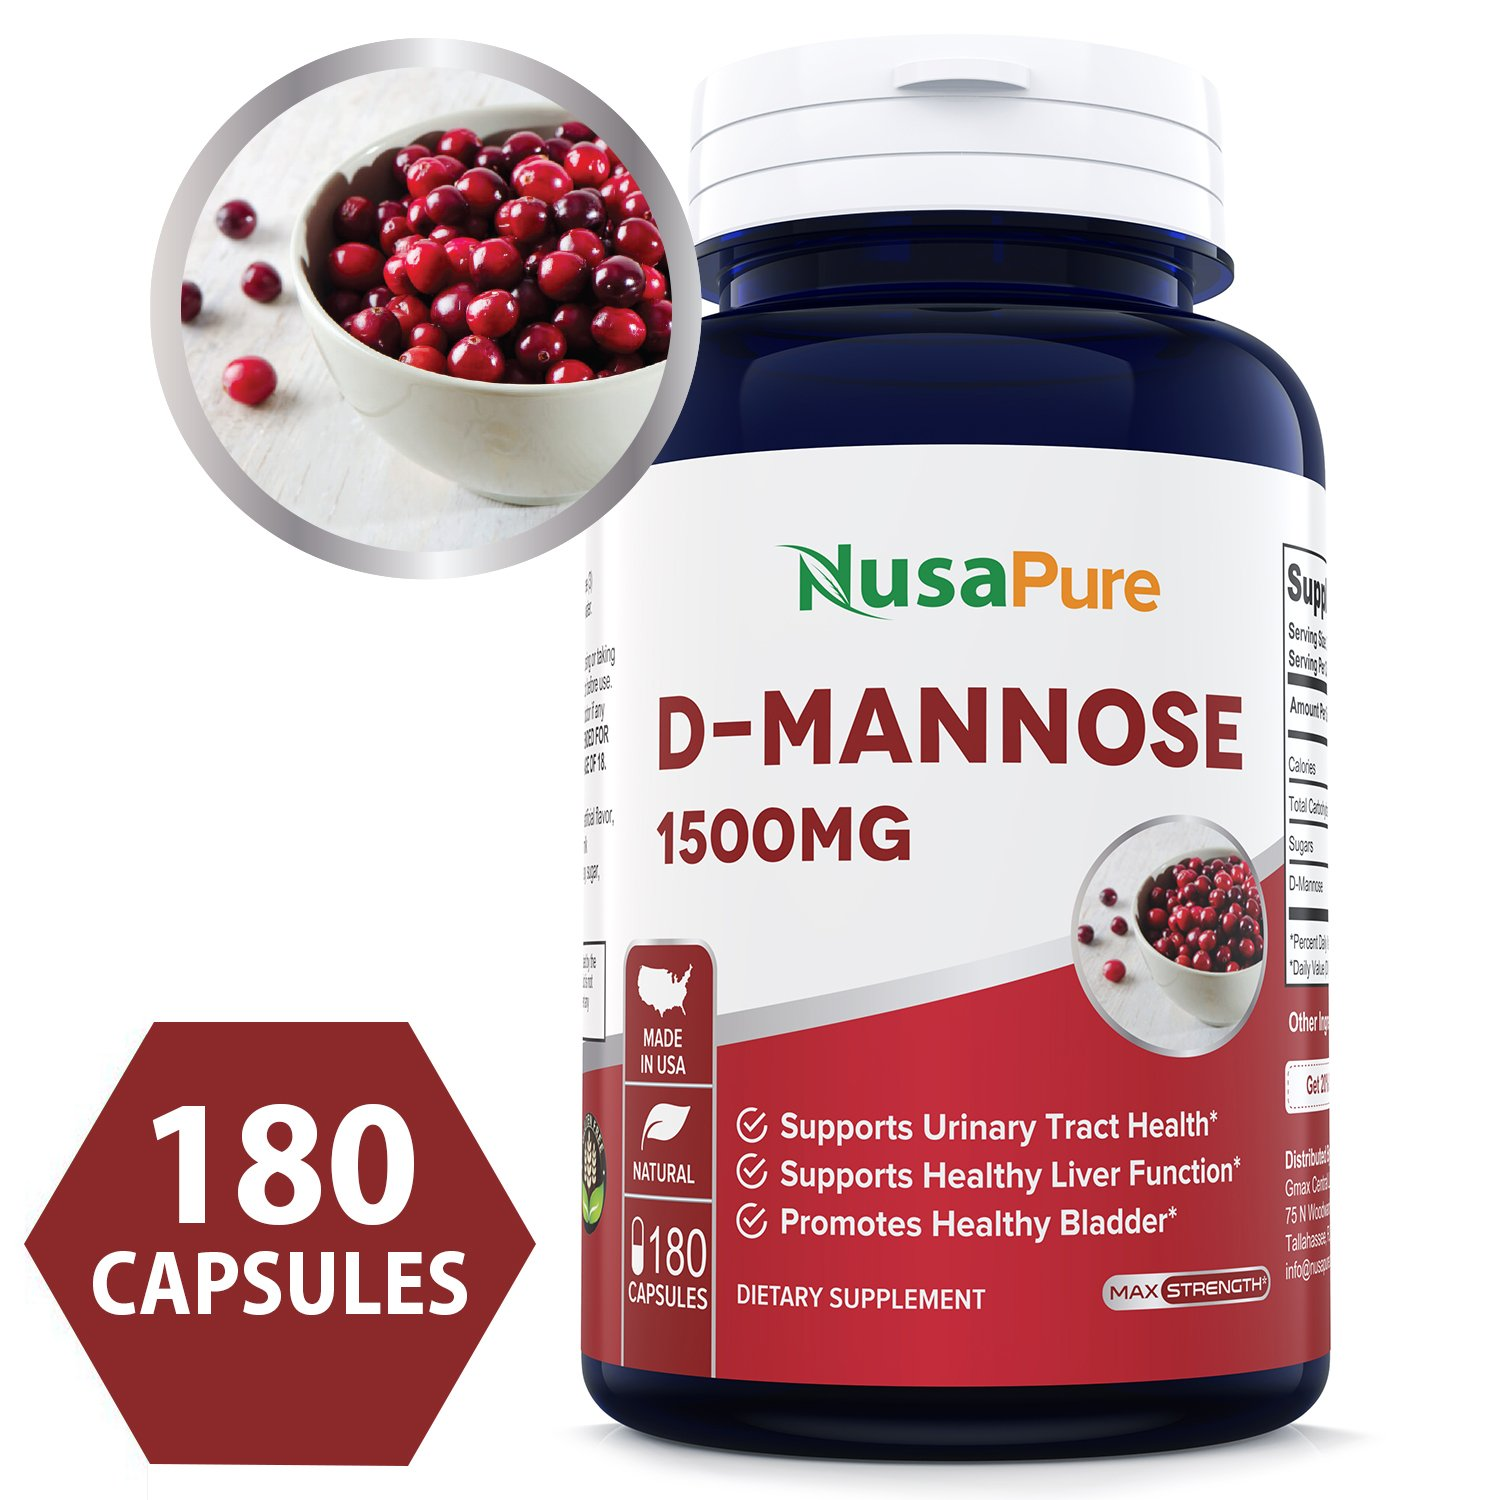 D-Mannose 1500mg 180 Capsules (Non-GMO & Gluten Free) Supports Urinary Tract Health, Promotes The Body's Natural Cleansing Process by NusaPure